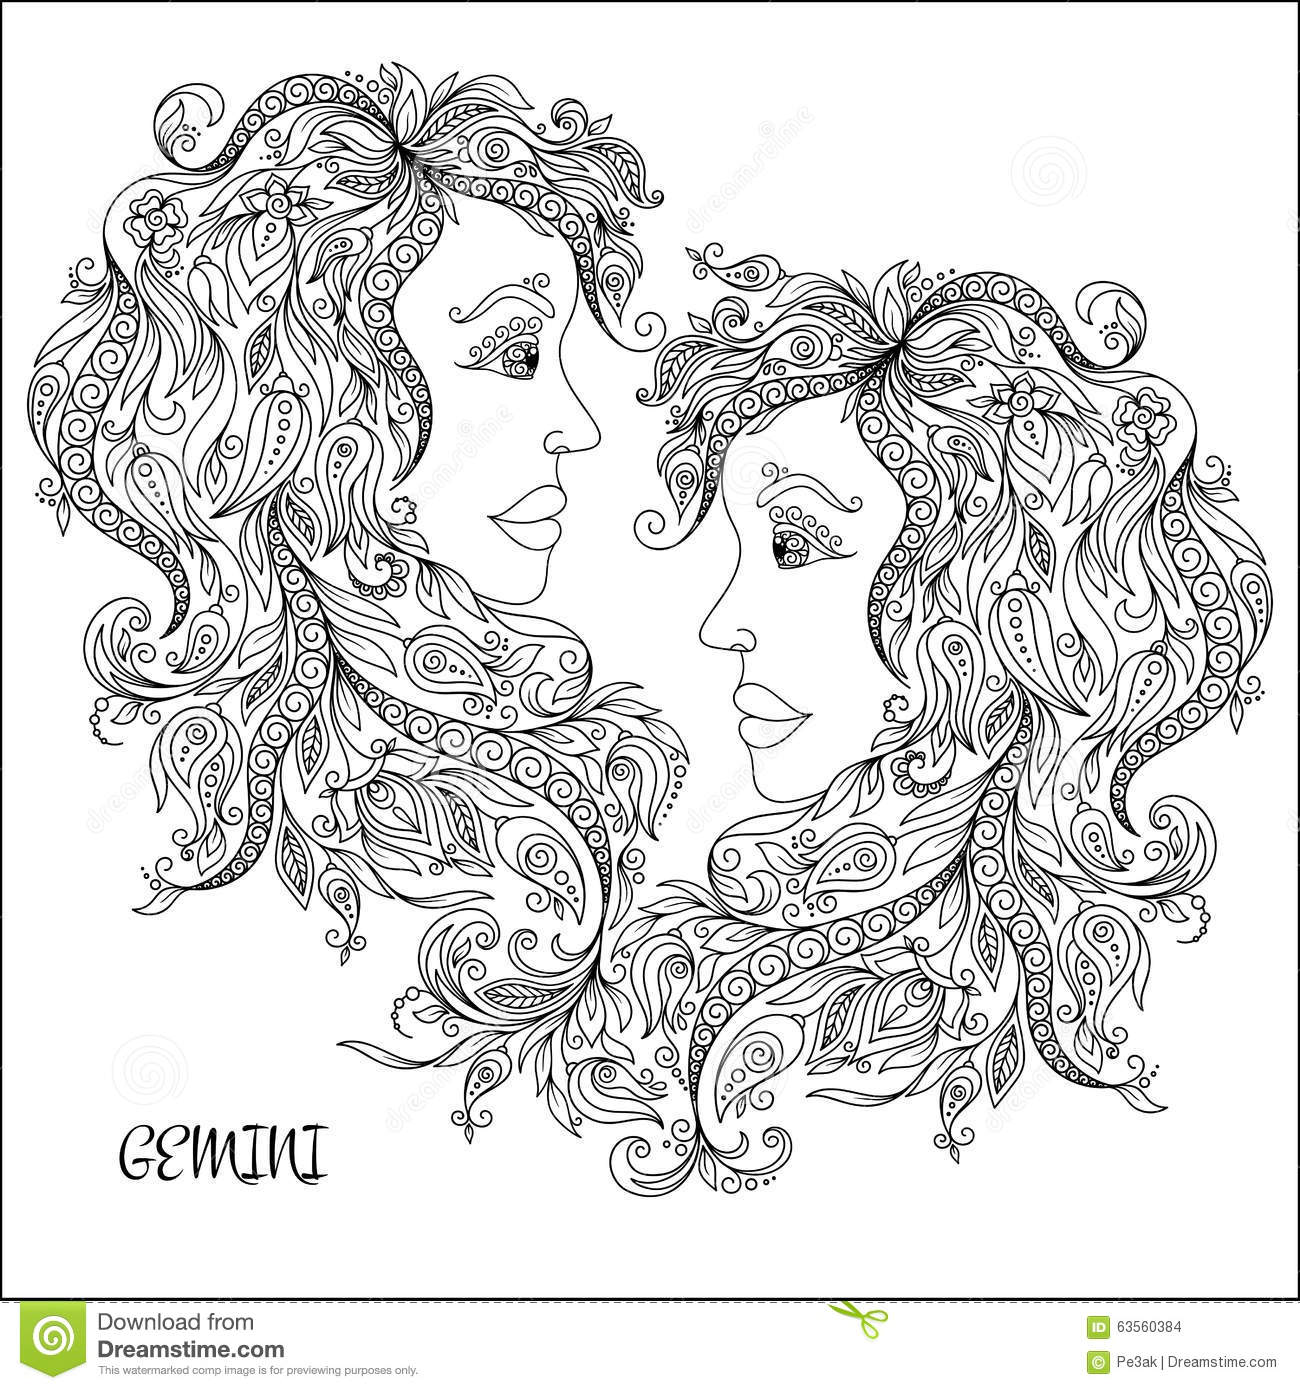 zodiac coloring pages - art gemini stock image 10064377